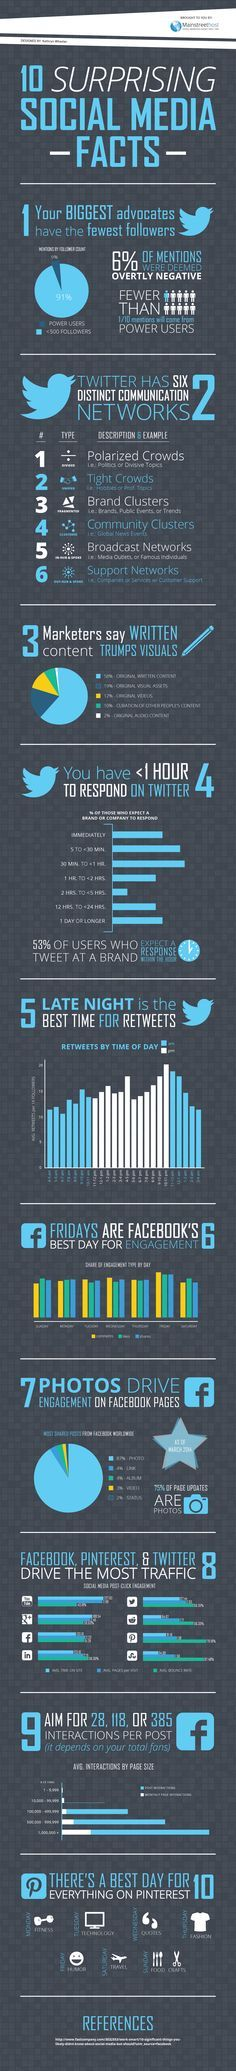 From Main Street Host Digital Marketing - 10 Surprising Social Media Facts  Infographic f7f9c5c340140